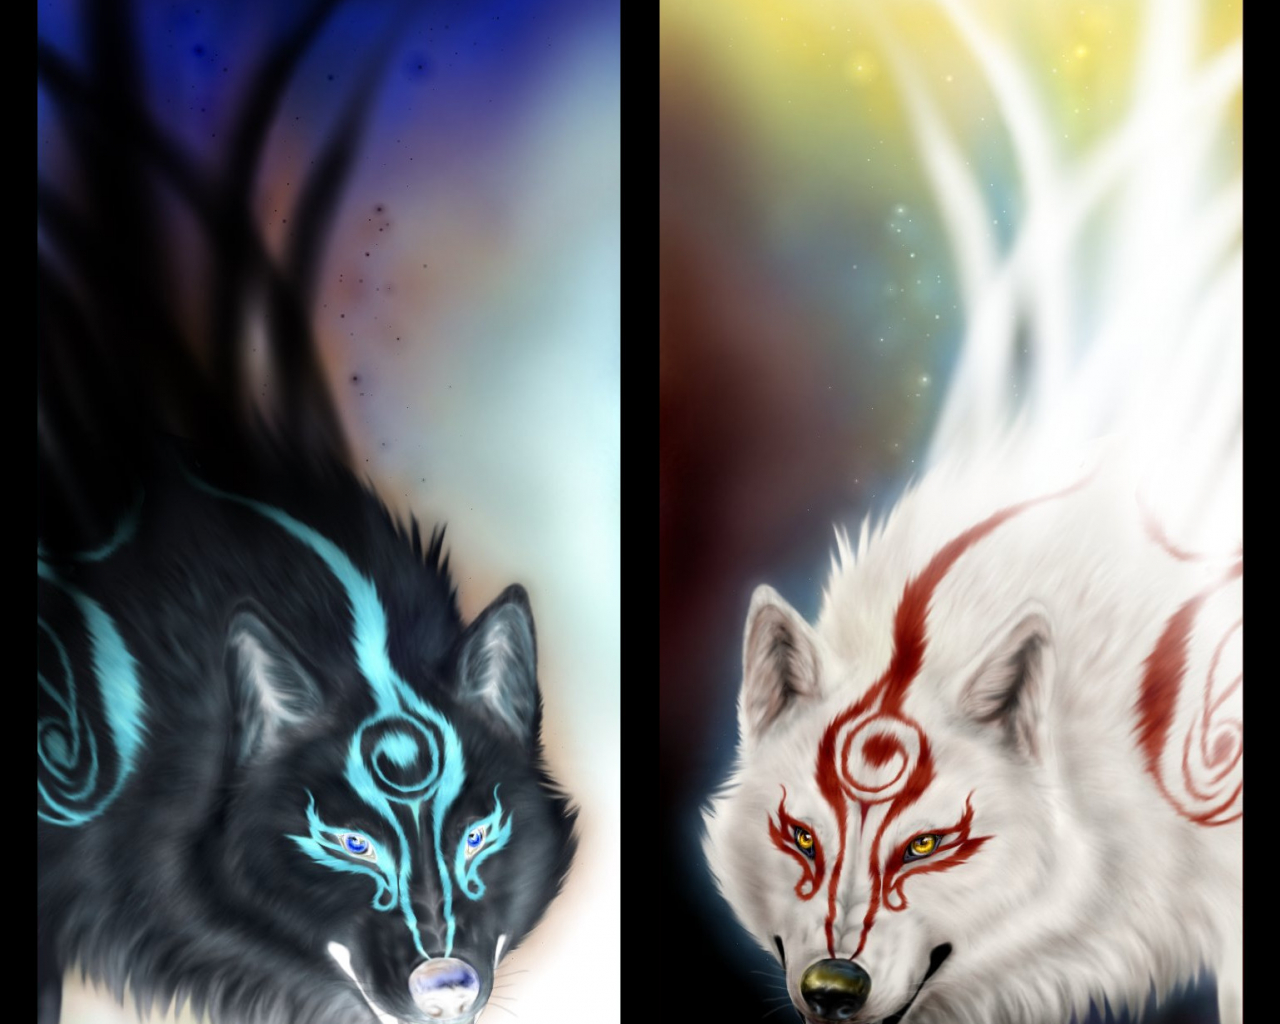 Free Download Black And White Wolf Wallpaper 1537x1527 For Your Desktop Mobile Tablet Explore 44 Black And White Wolf Wallpaper Black And White Desktop Wallpaper Black And Red Wallpaper White Wallpaper